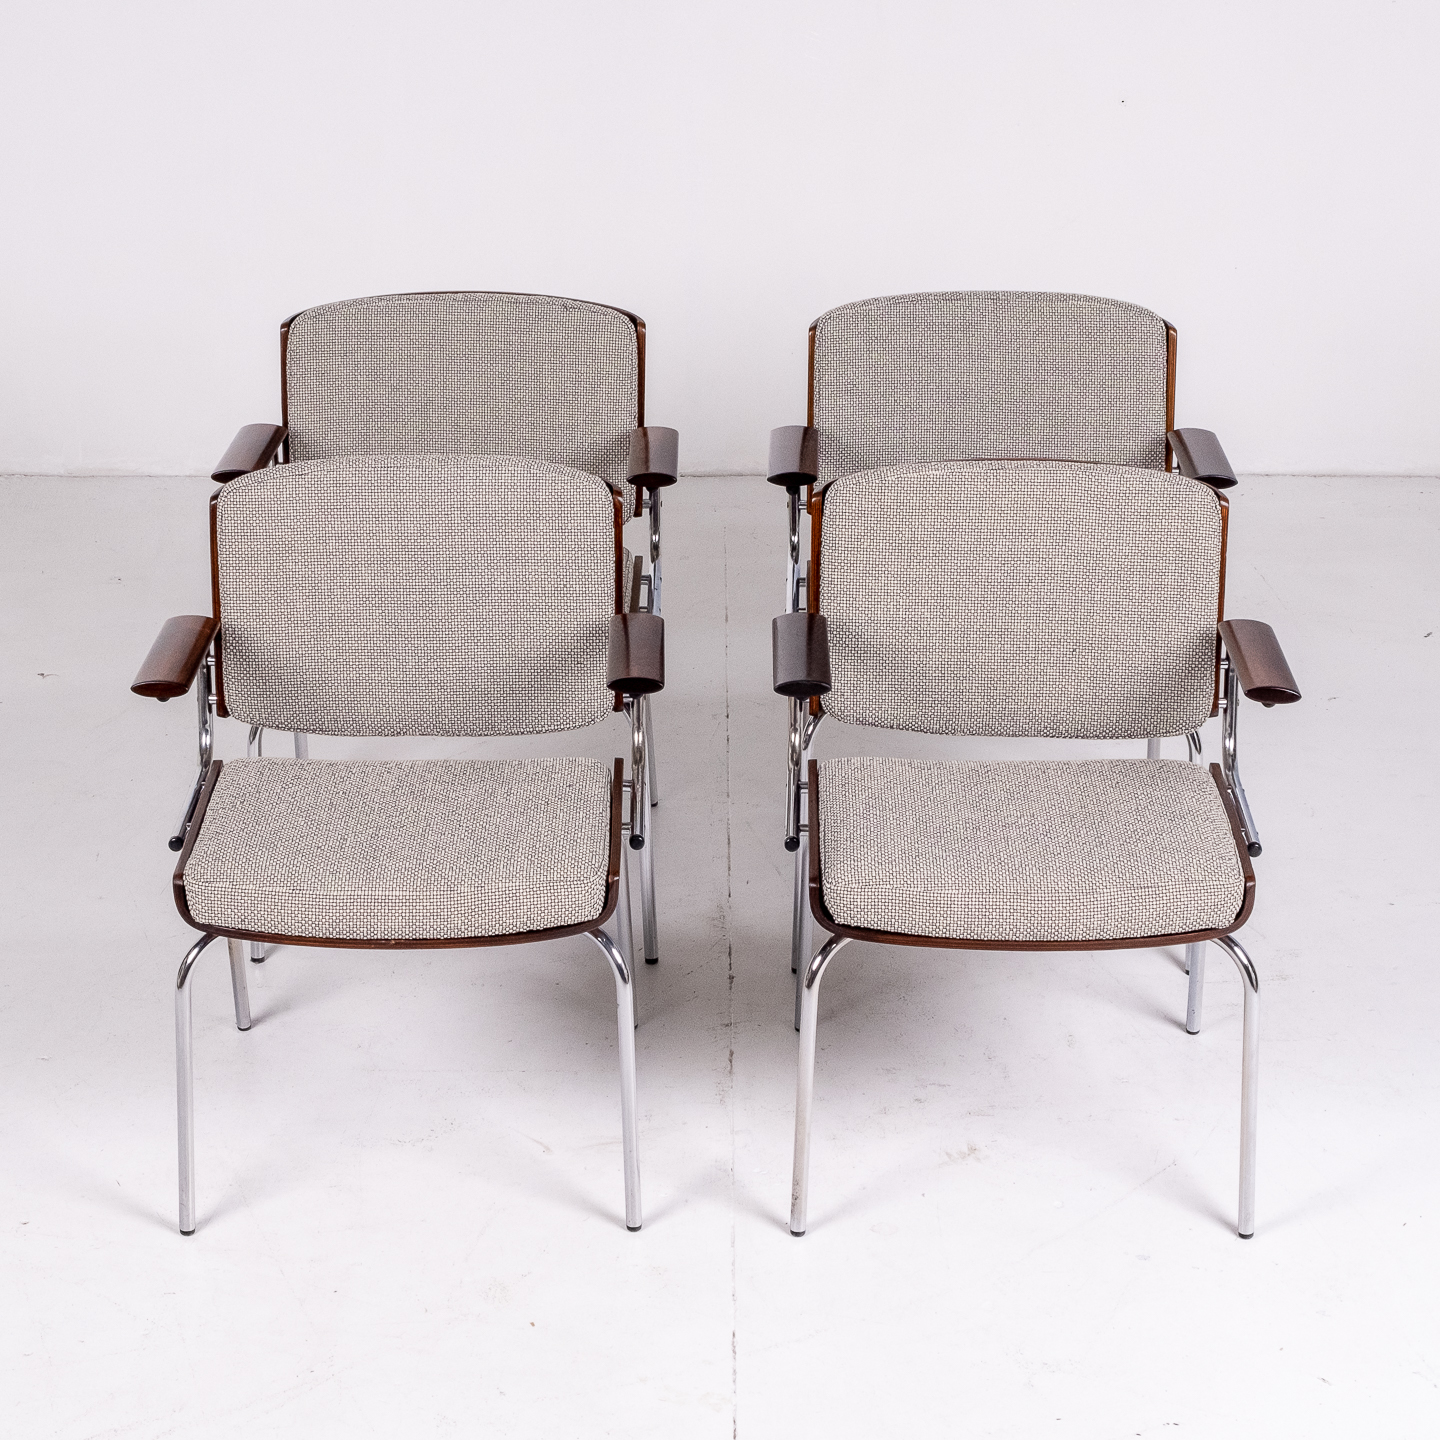 Set Of 4 Dining Chairs By Duba Mobelindustri In Rosewood, Chrome And New Kvadrat Upholstery, 1970s, Denmark 94